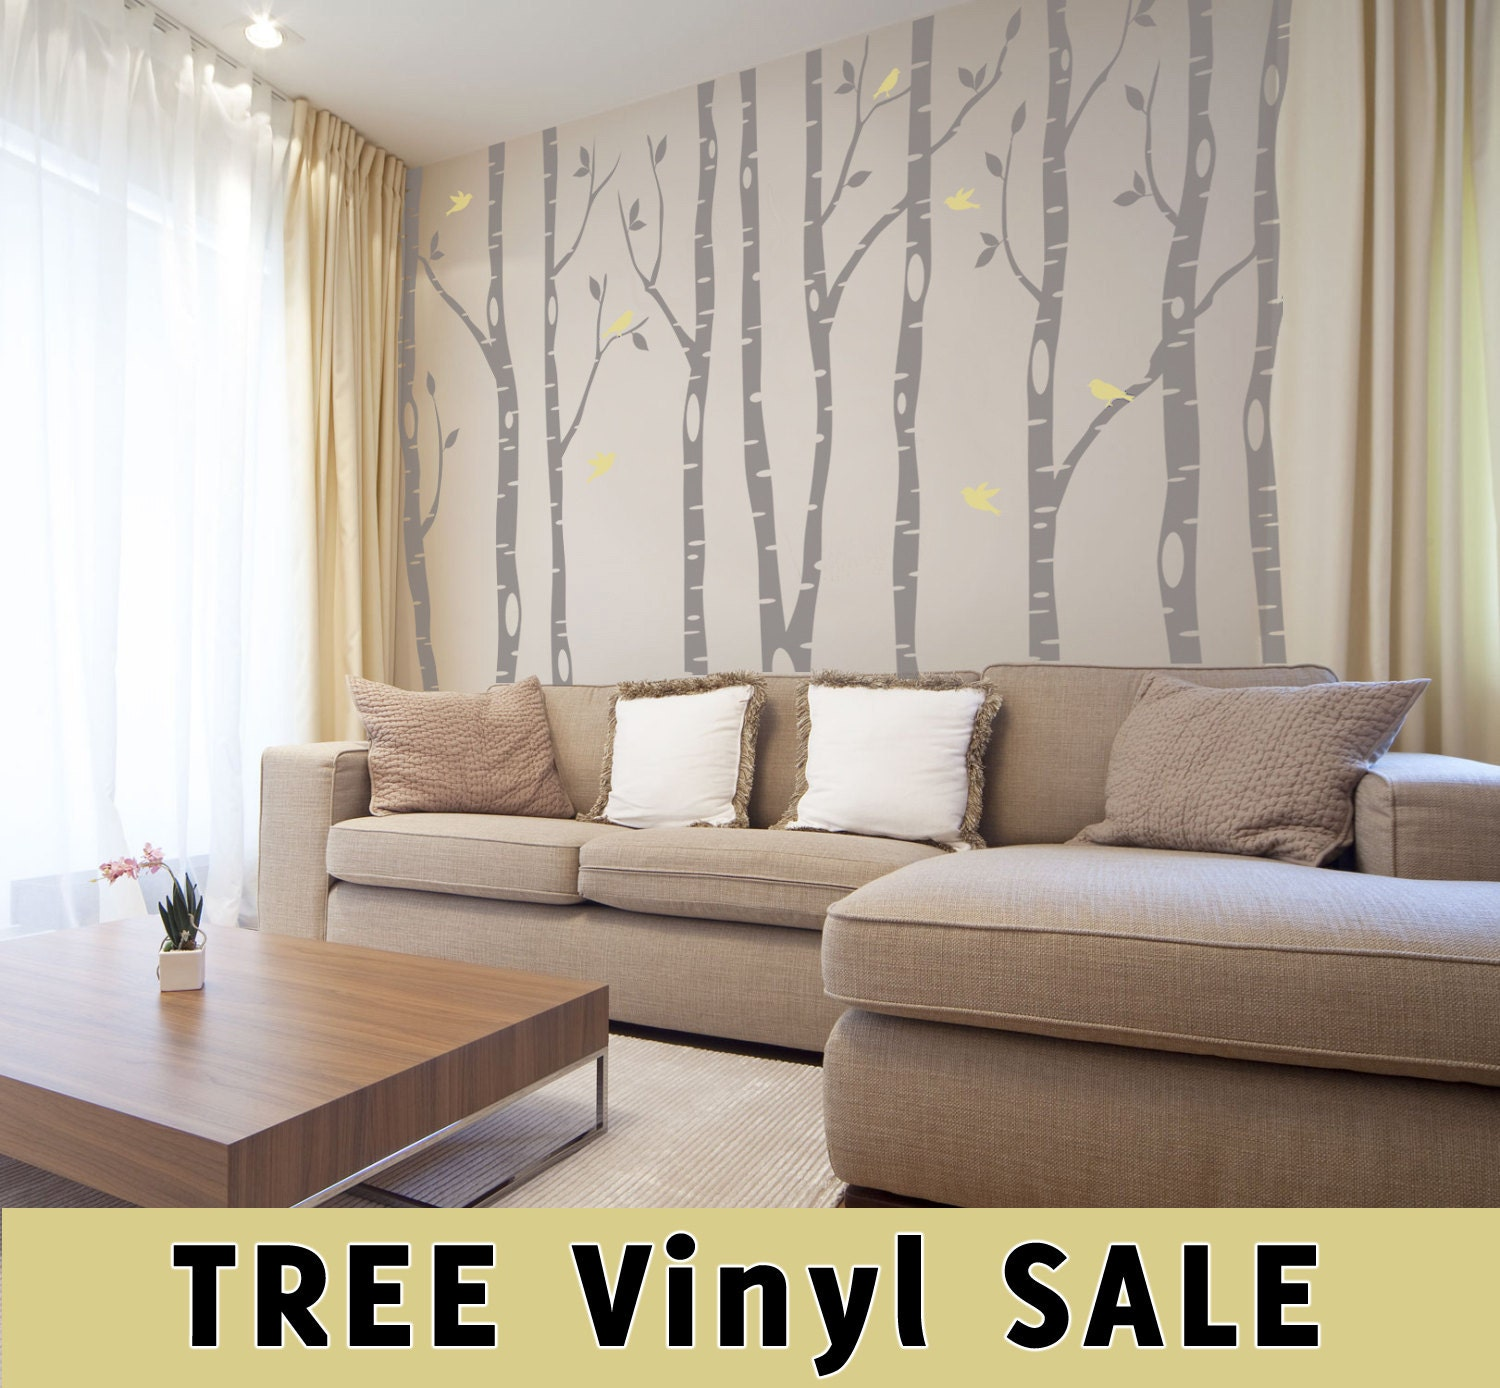 Trees Wall Decal 9 River Birch Trees Woodland Forest 2 Colors